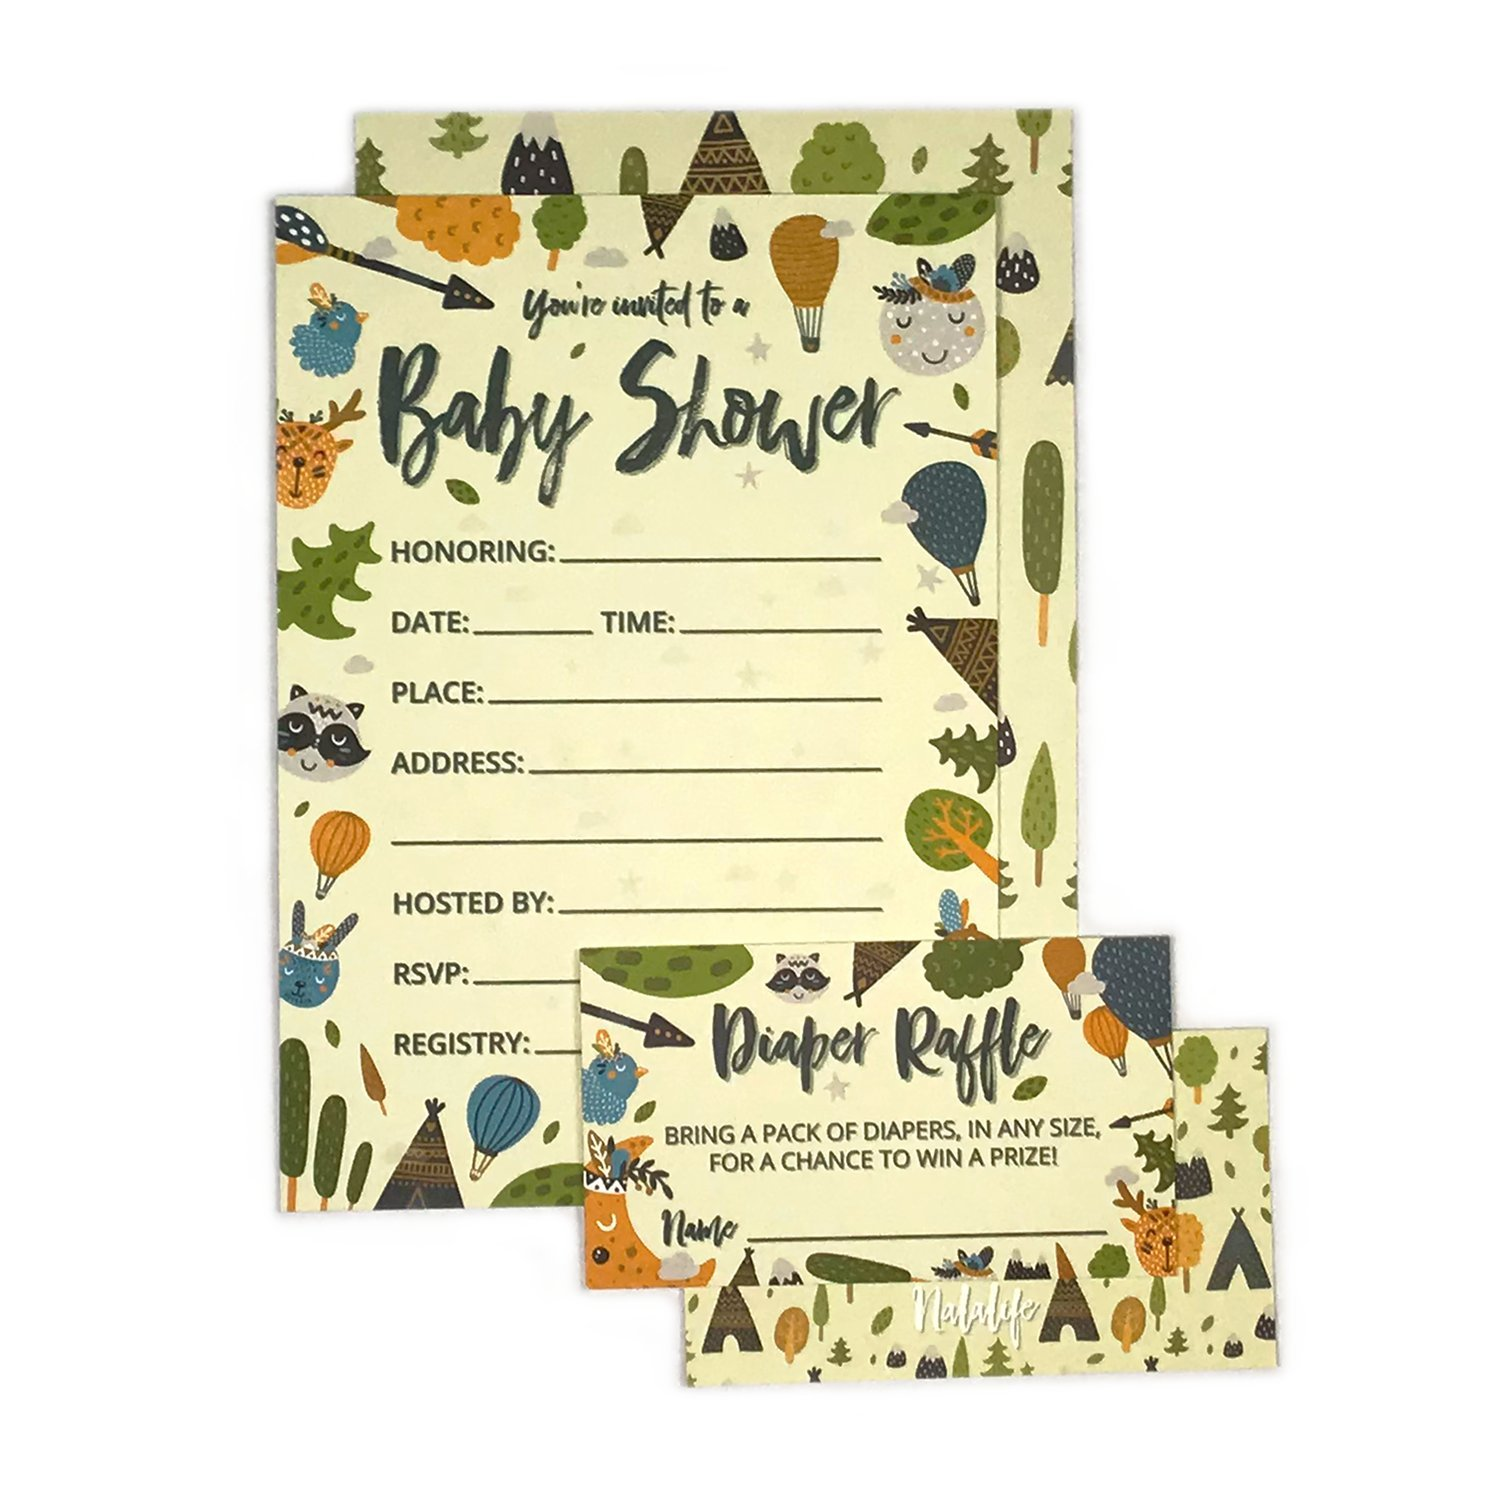 Baby Shower Invitation Cards with Diaper Raffle Tickets for Boy and Girl - Woodland Forest Animals - Set of 25 Party Invites - by Nalalife by Nalalife (Image #2)